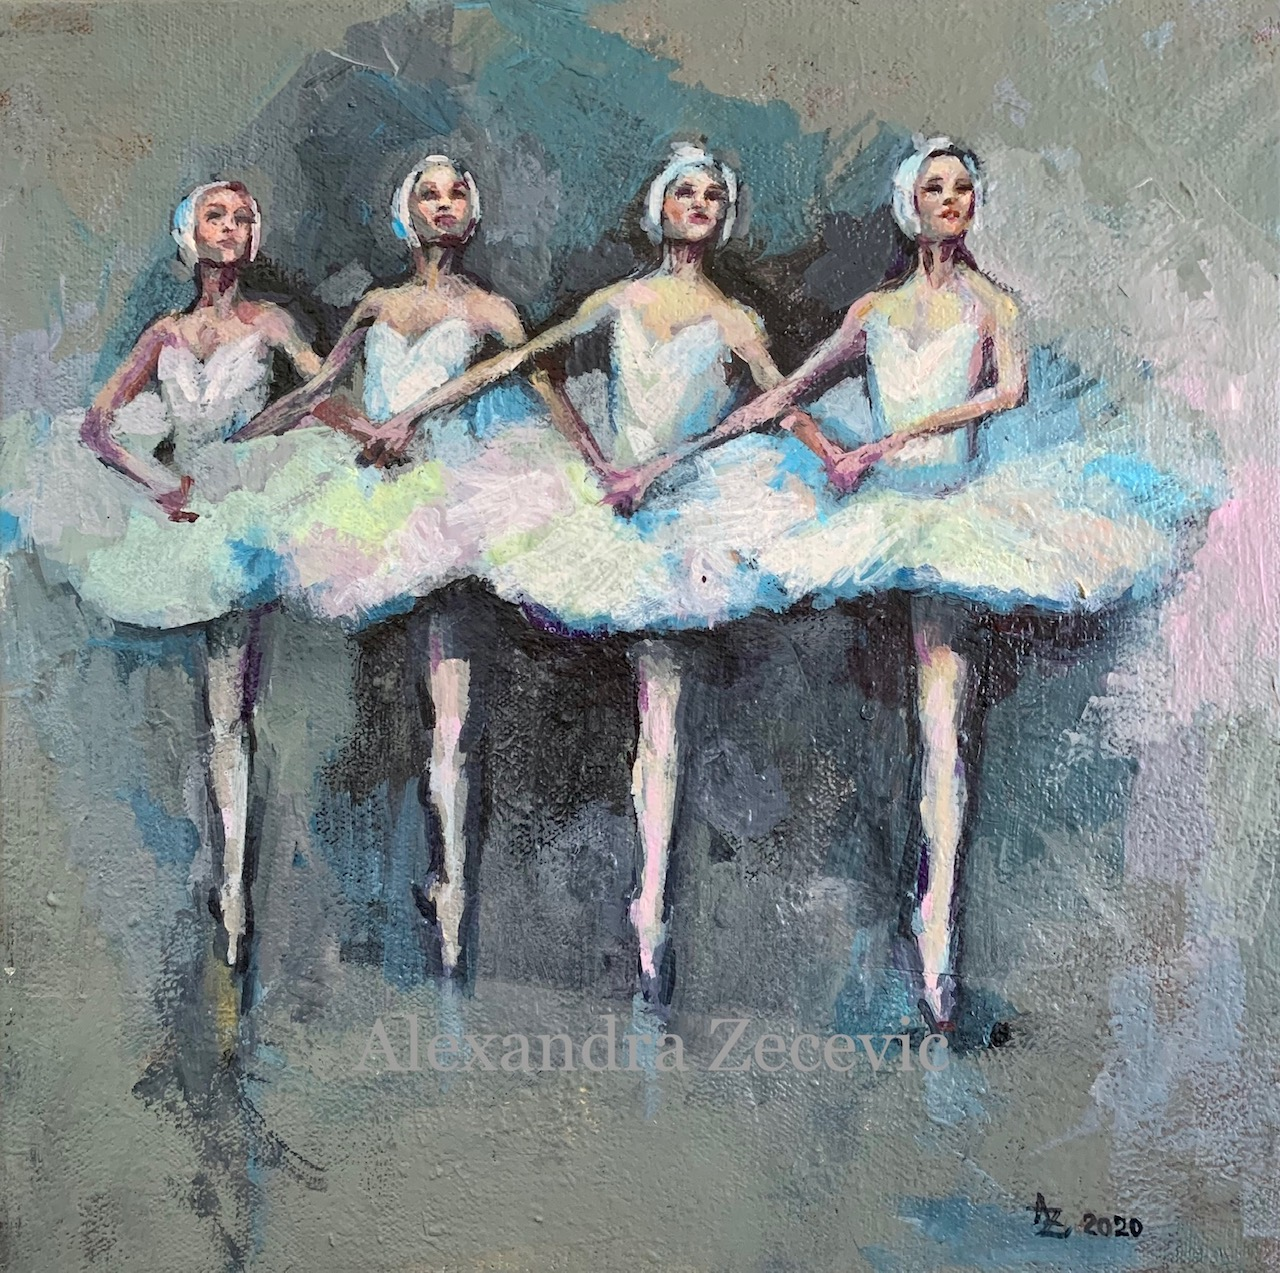 Swan lake ballerinas